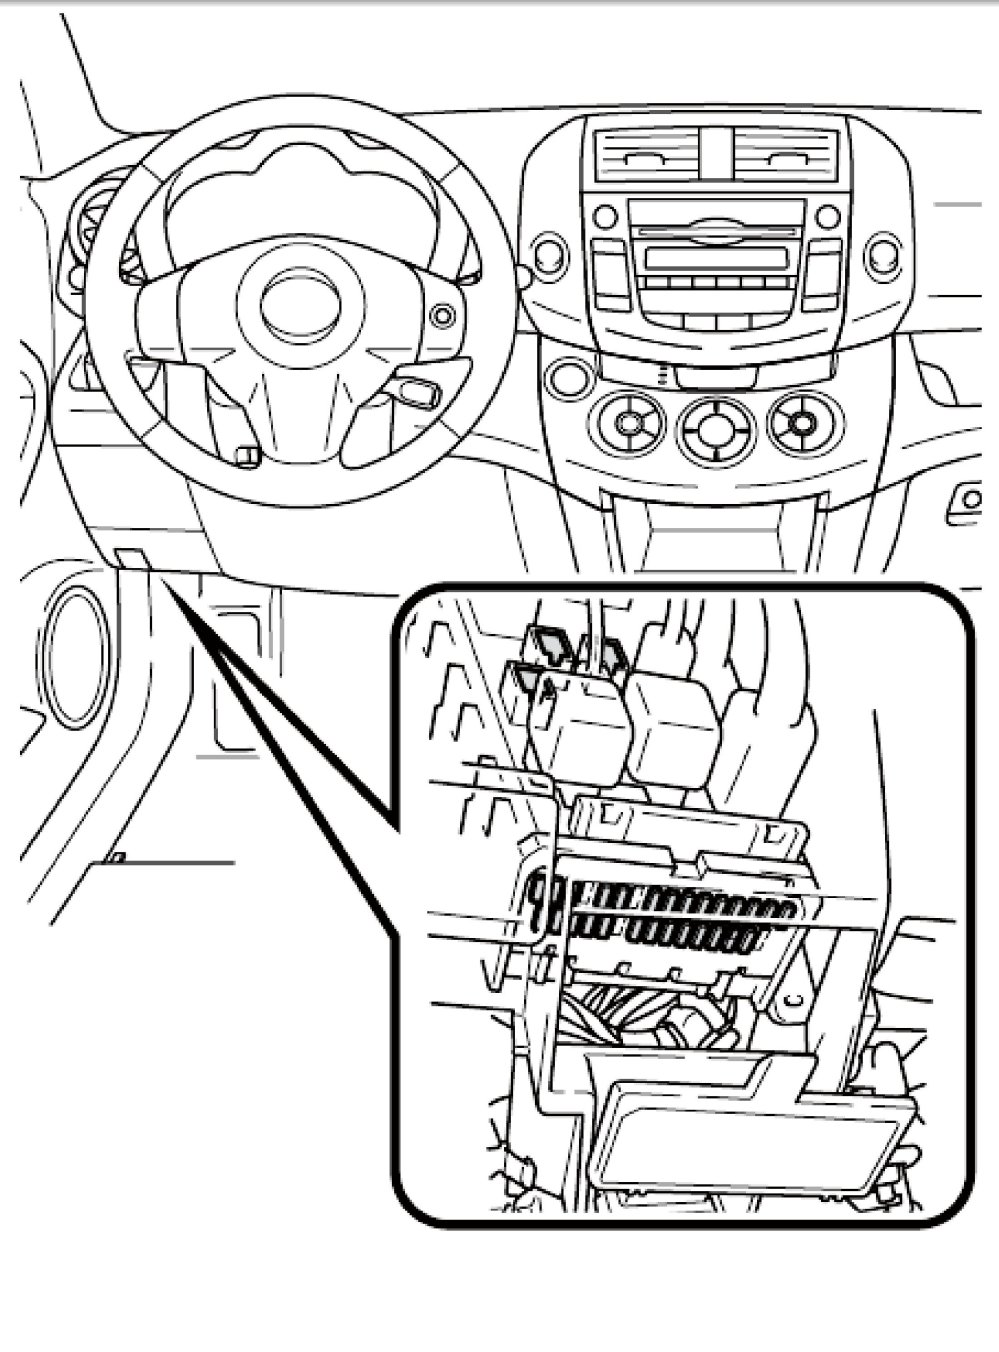 medium resolution of rav4 fuse diagram wiring diagrams dodge ram fuse box 1999 rav4 fuse box